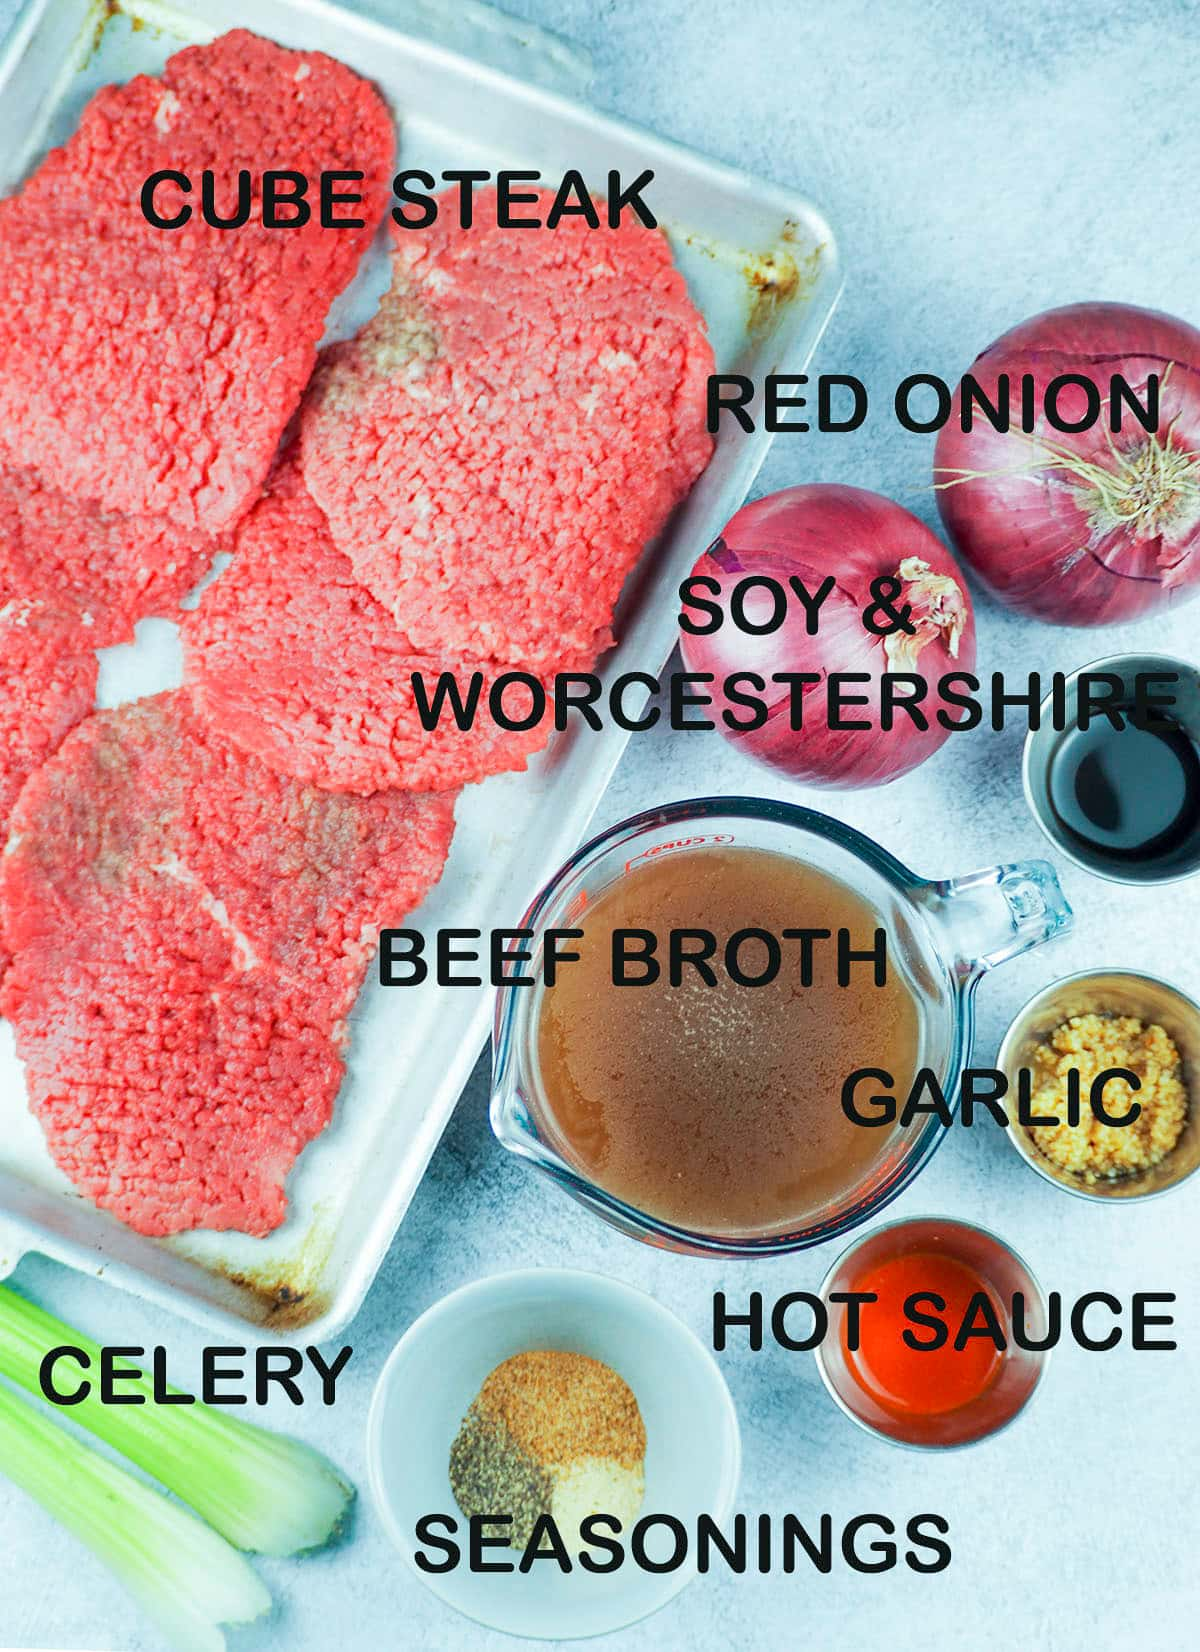 ingredients for cube steak recipe